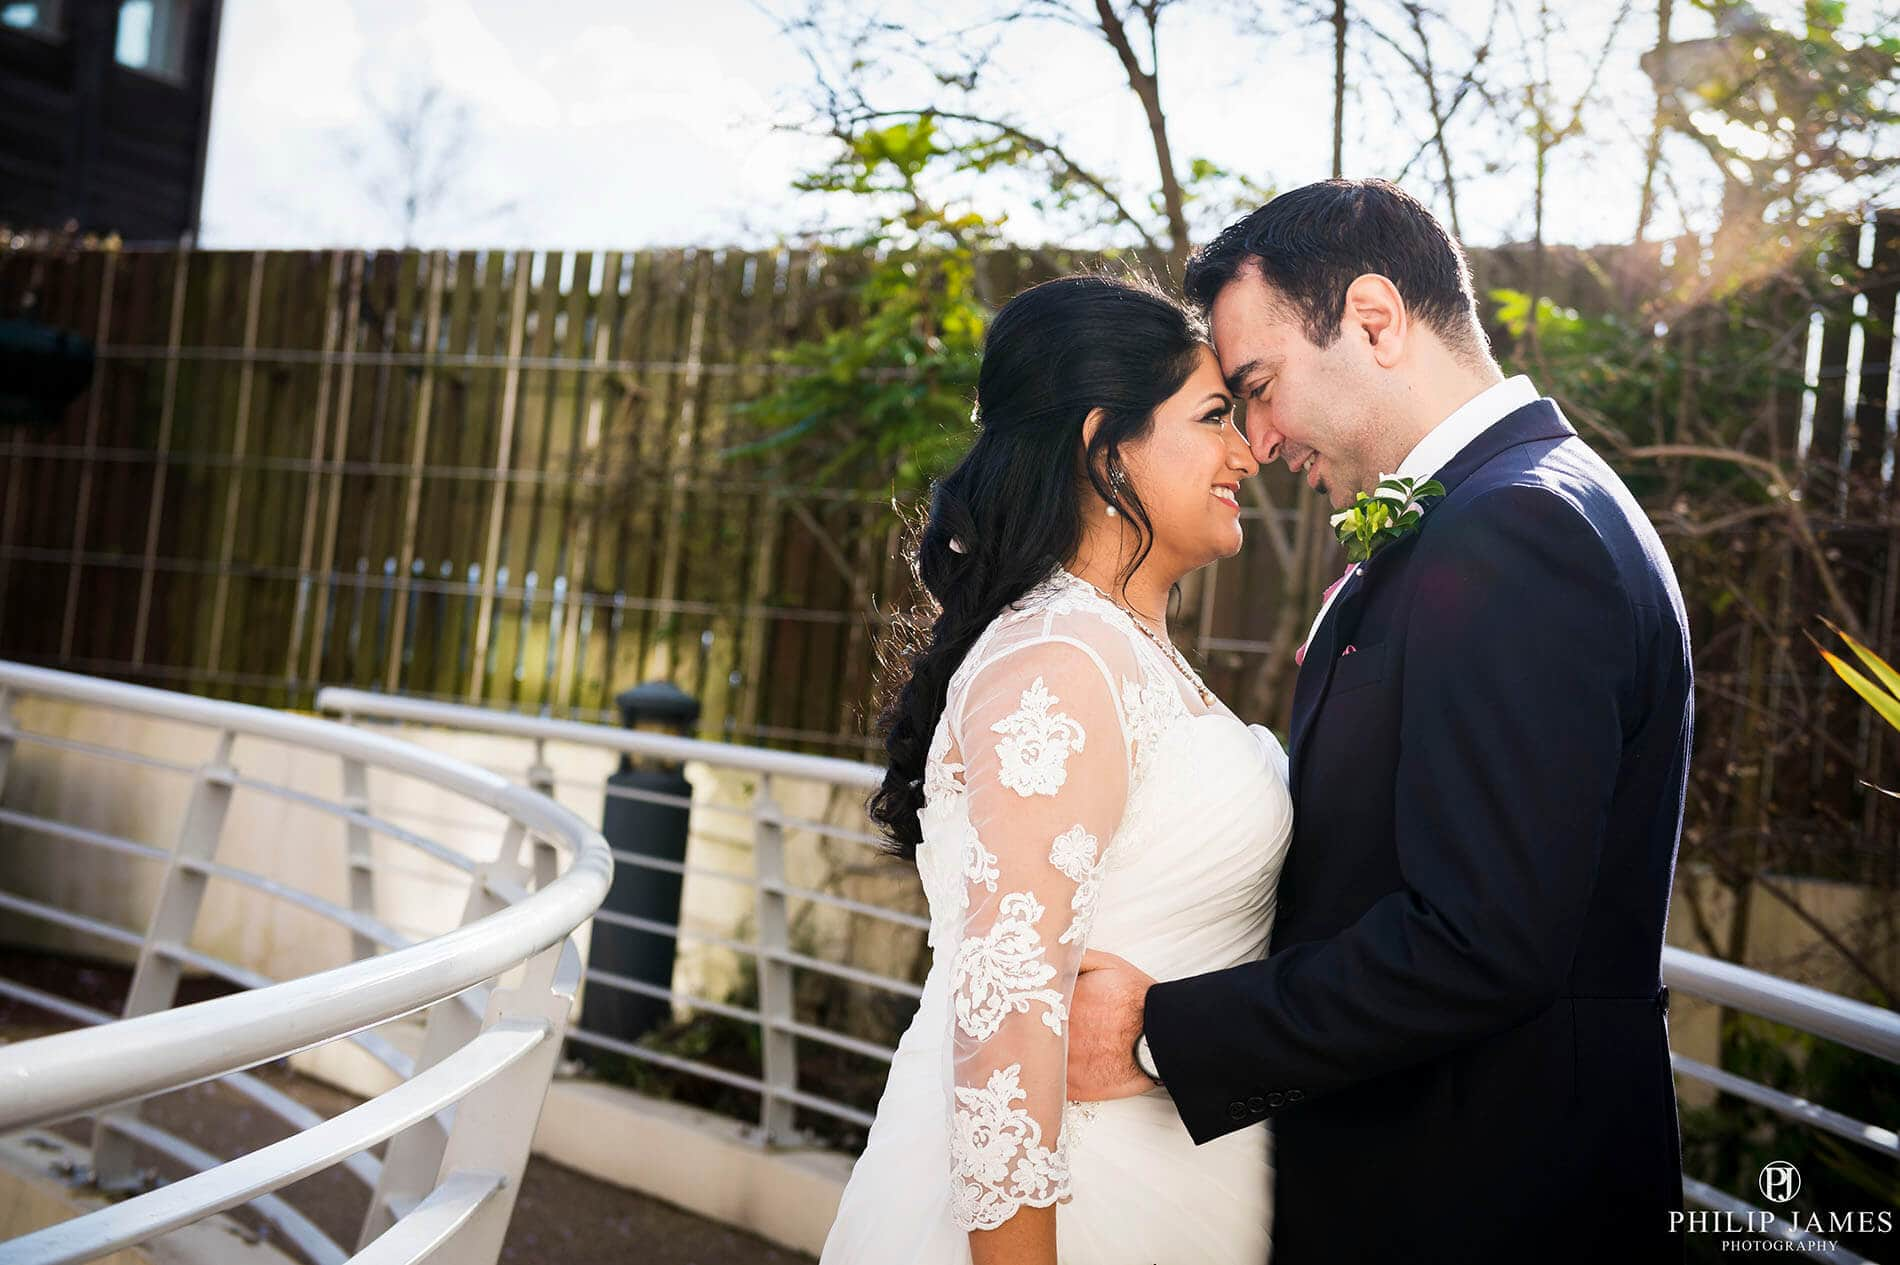 Birmingham Registry Office | Philip James Photography